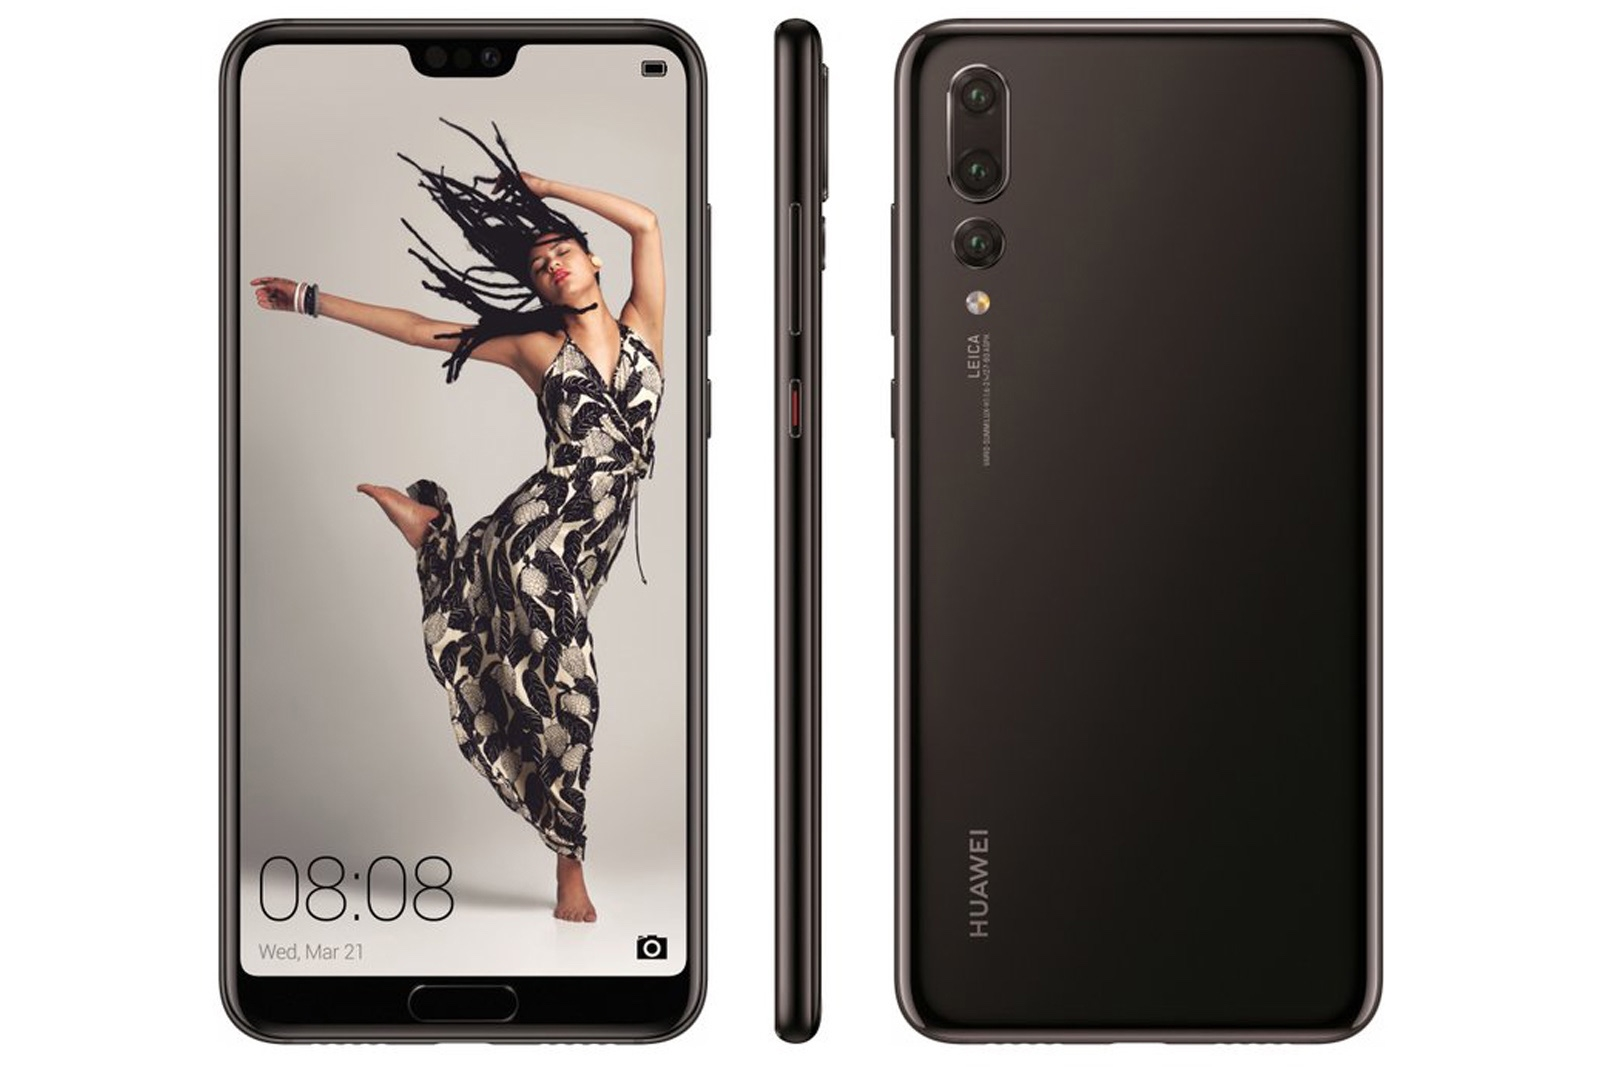 Huawei's notch-infused P20 phone lineup leaks out | DeviceDaily.com